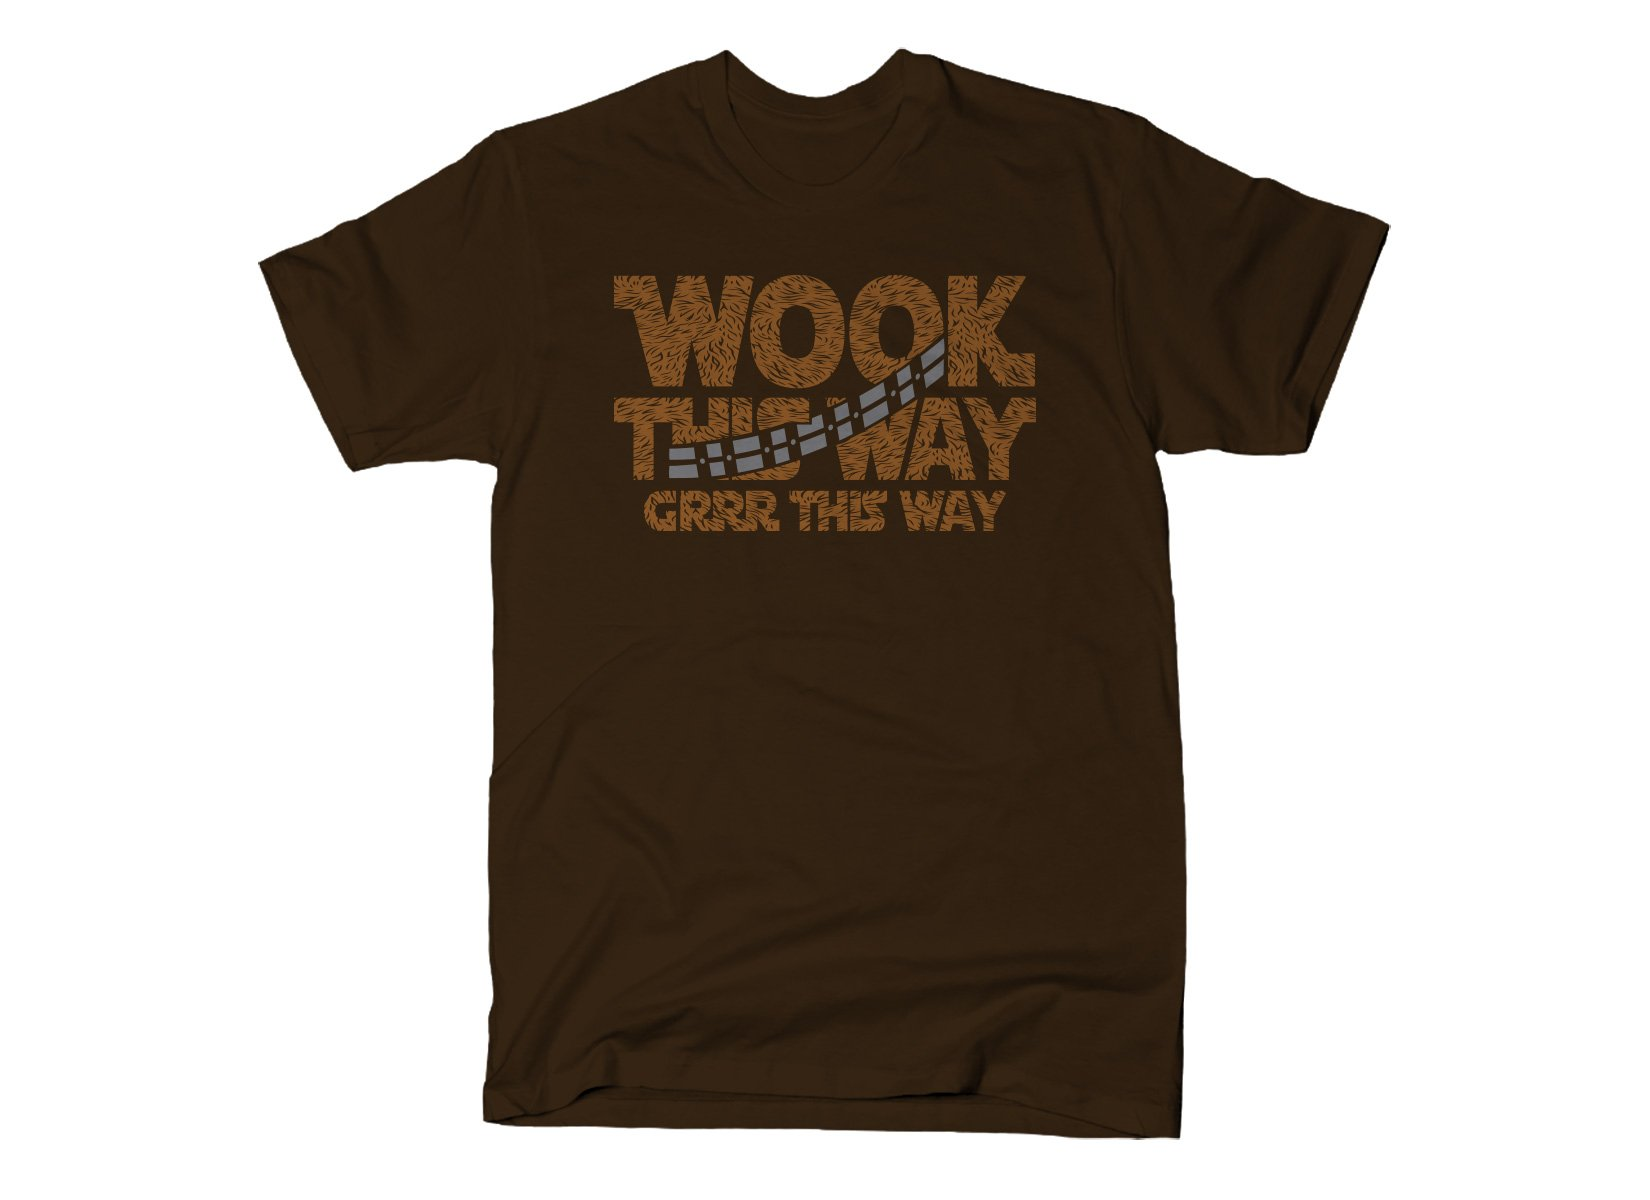 Wook This Way on Mens T-Shirt